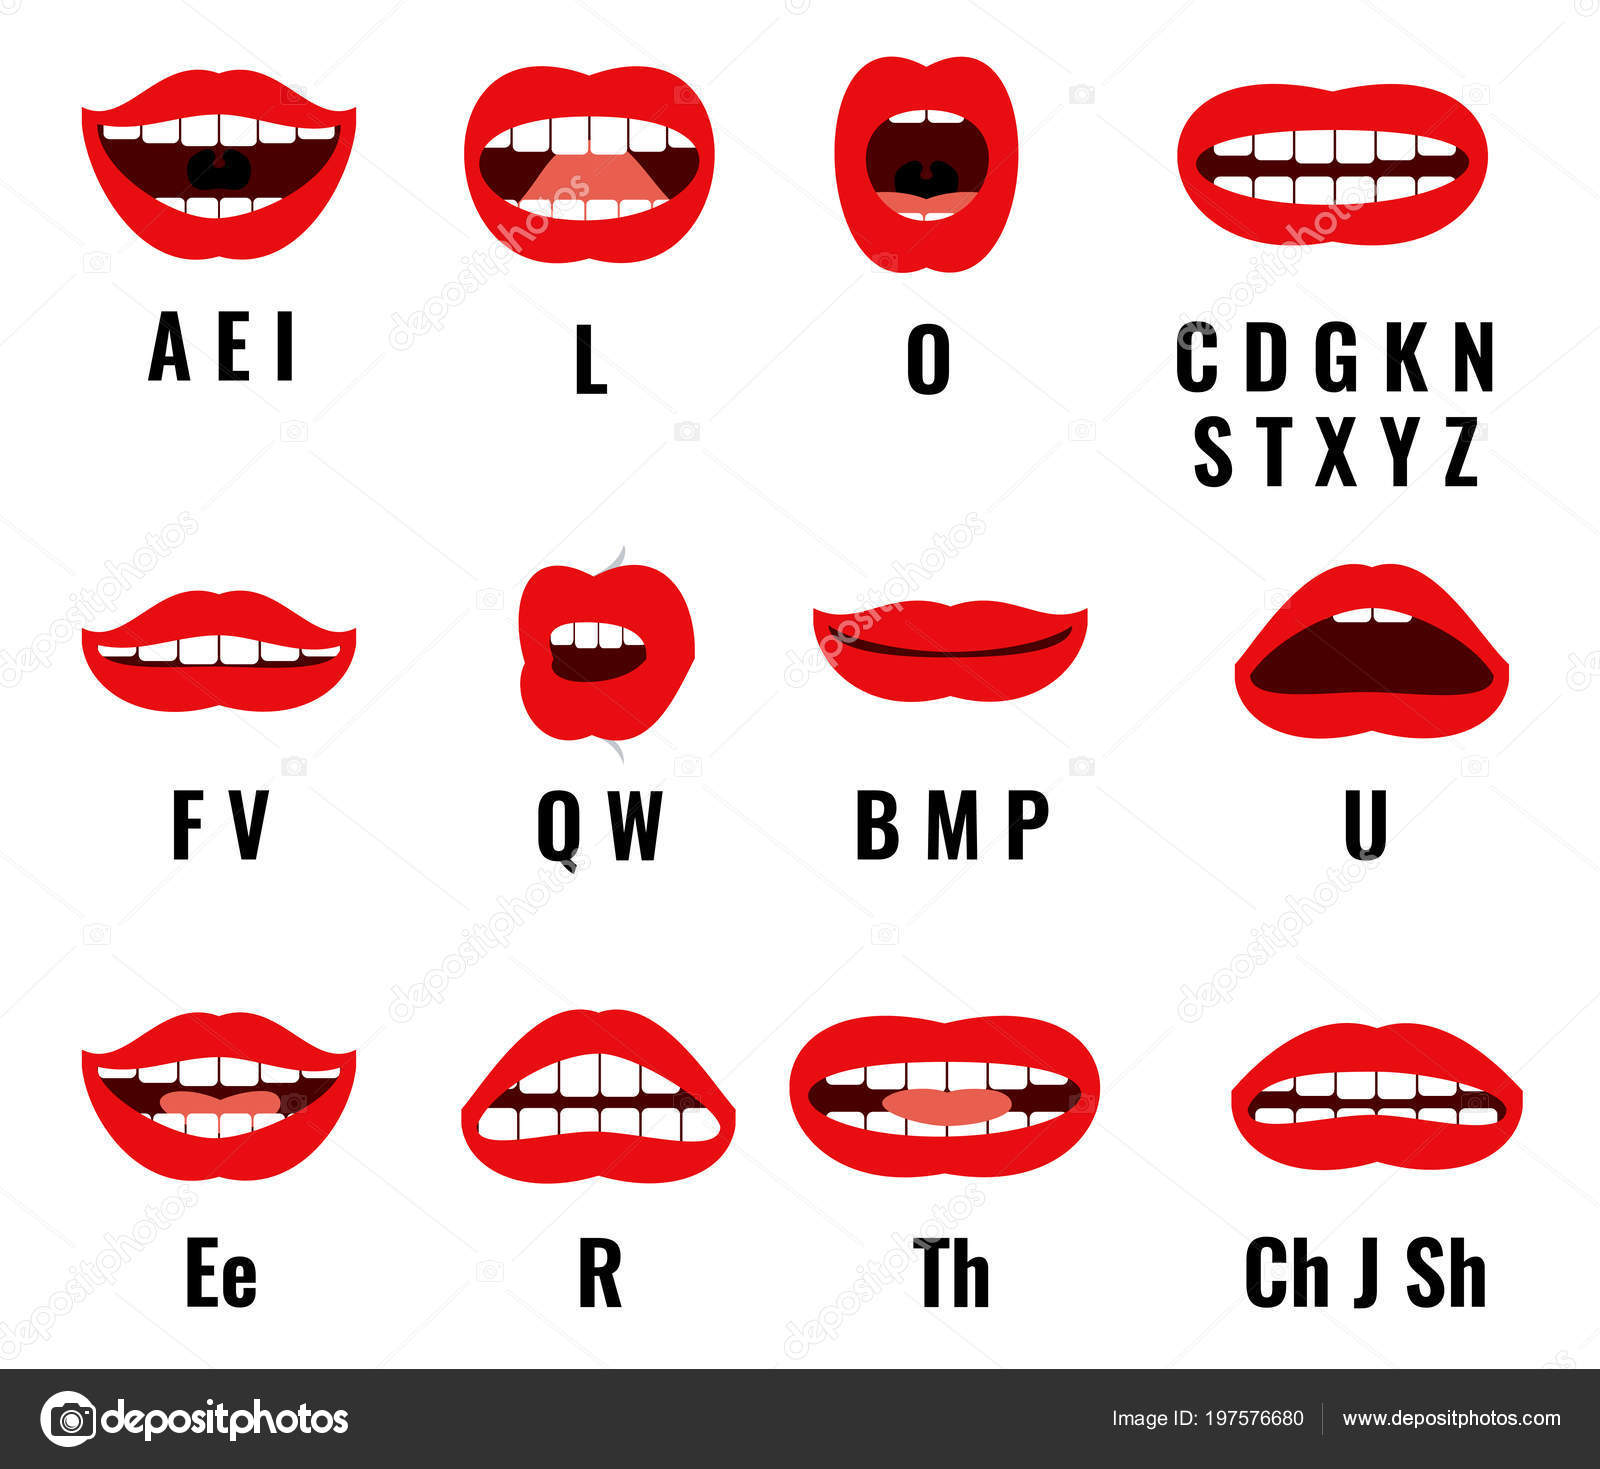 Cartoon character mouth and lips sync for sound pronunciation ...